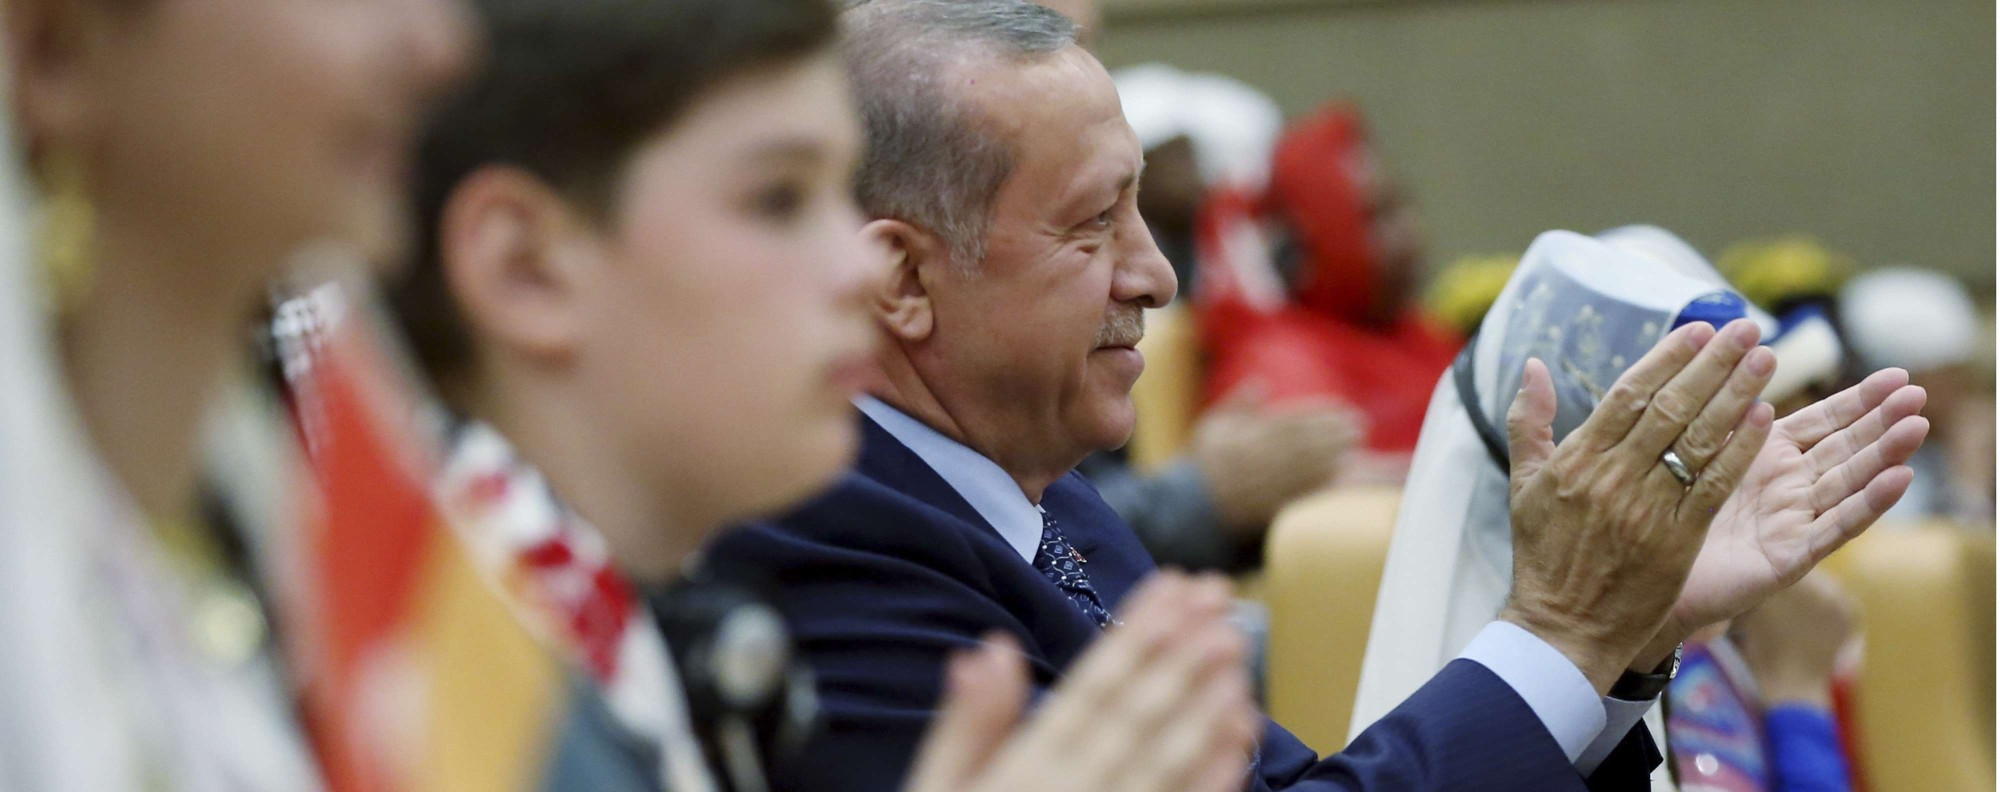 Turkey's President Recep Tayyip Erdogan, centre. Photo: AP